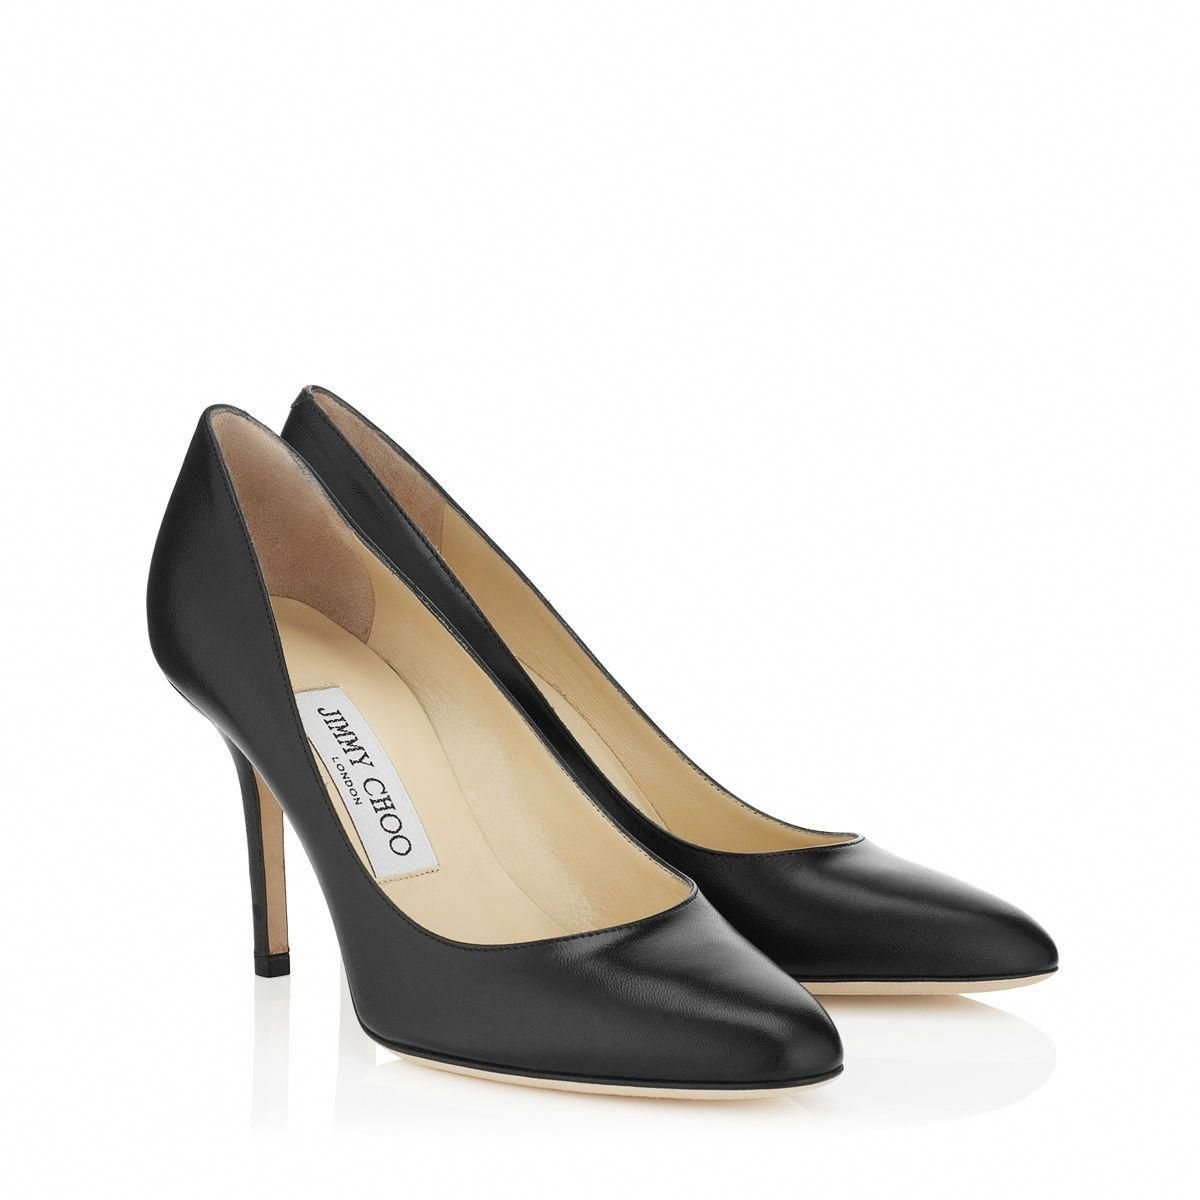 112fc997e1e7 Jimmy Choo - Gilbert - 247gilbertkid - Black Leather Round Toe Pumps - The  Gilbert is part of the iconic CHOO 24 7 collection. These classic Jimmy Choo  ...